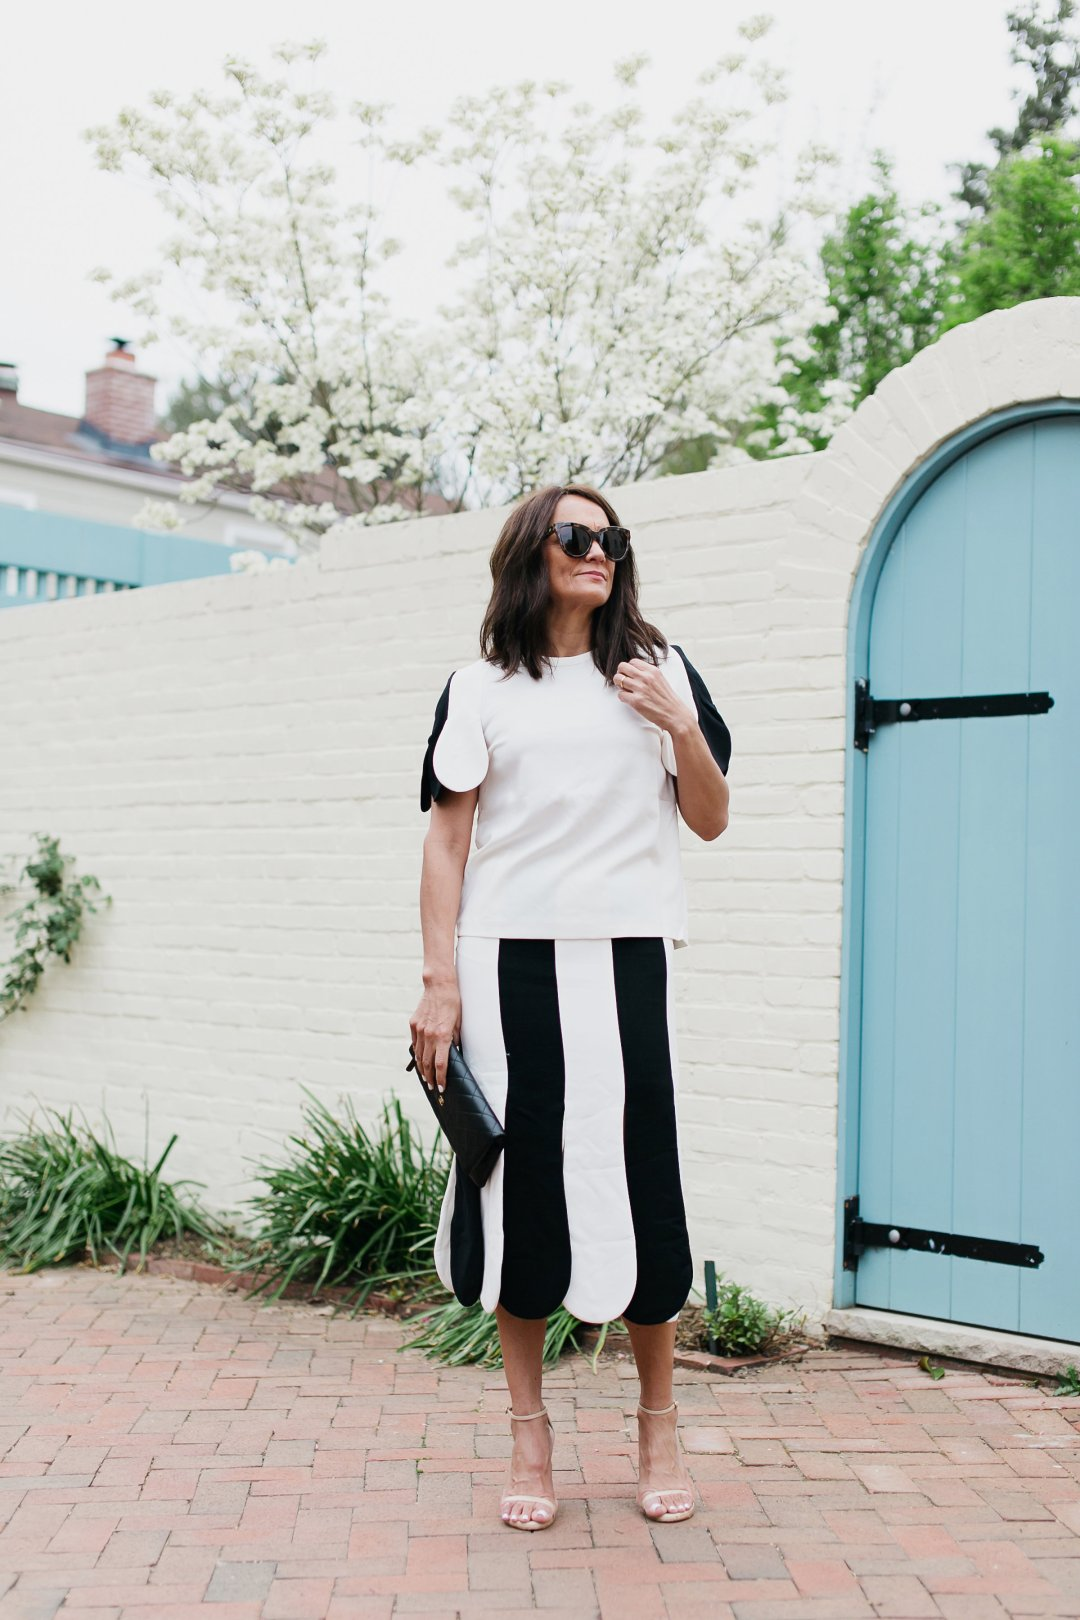 Vb X Target Black And White With A Spring Petal Twist Simply Sylvia Skirt The Bold Panels On Sleeves Are Pleasing Details Not Only From An Optical Standpoint But They Add Subtle Movement In